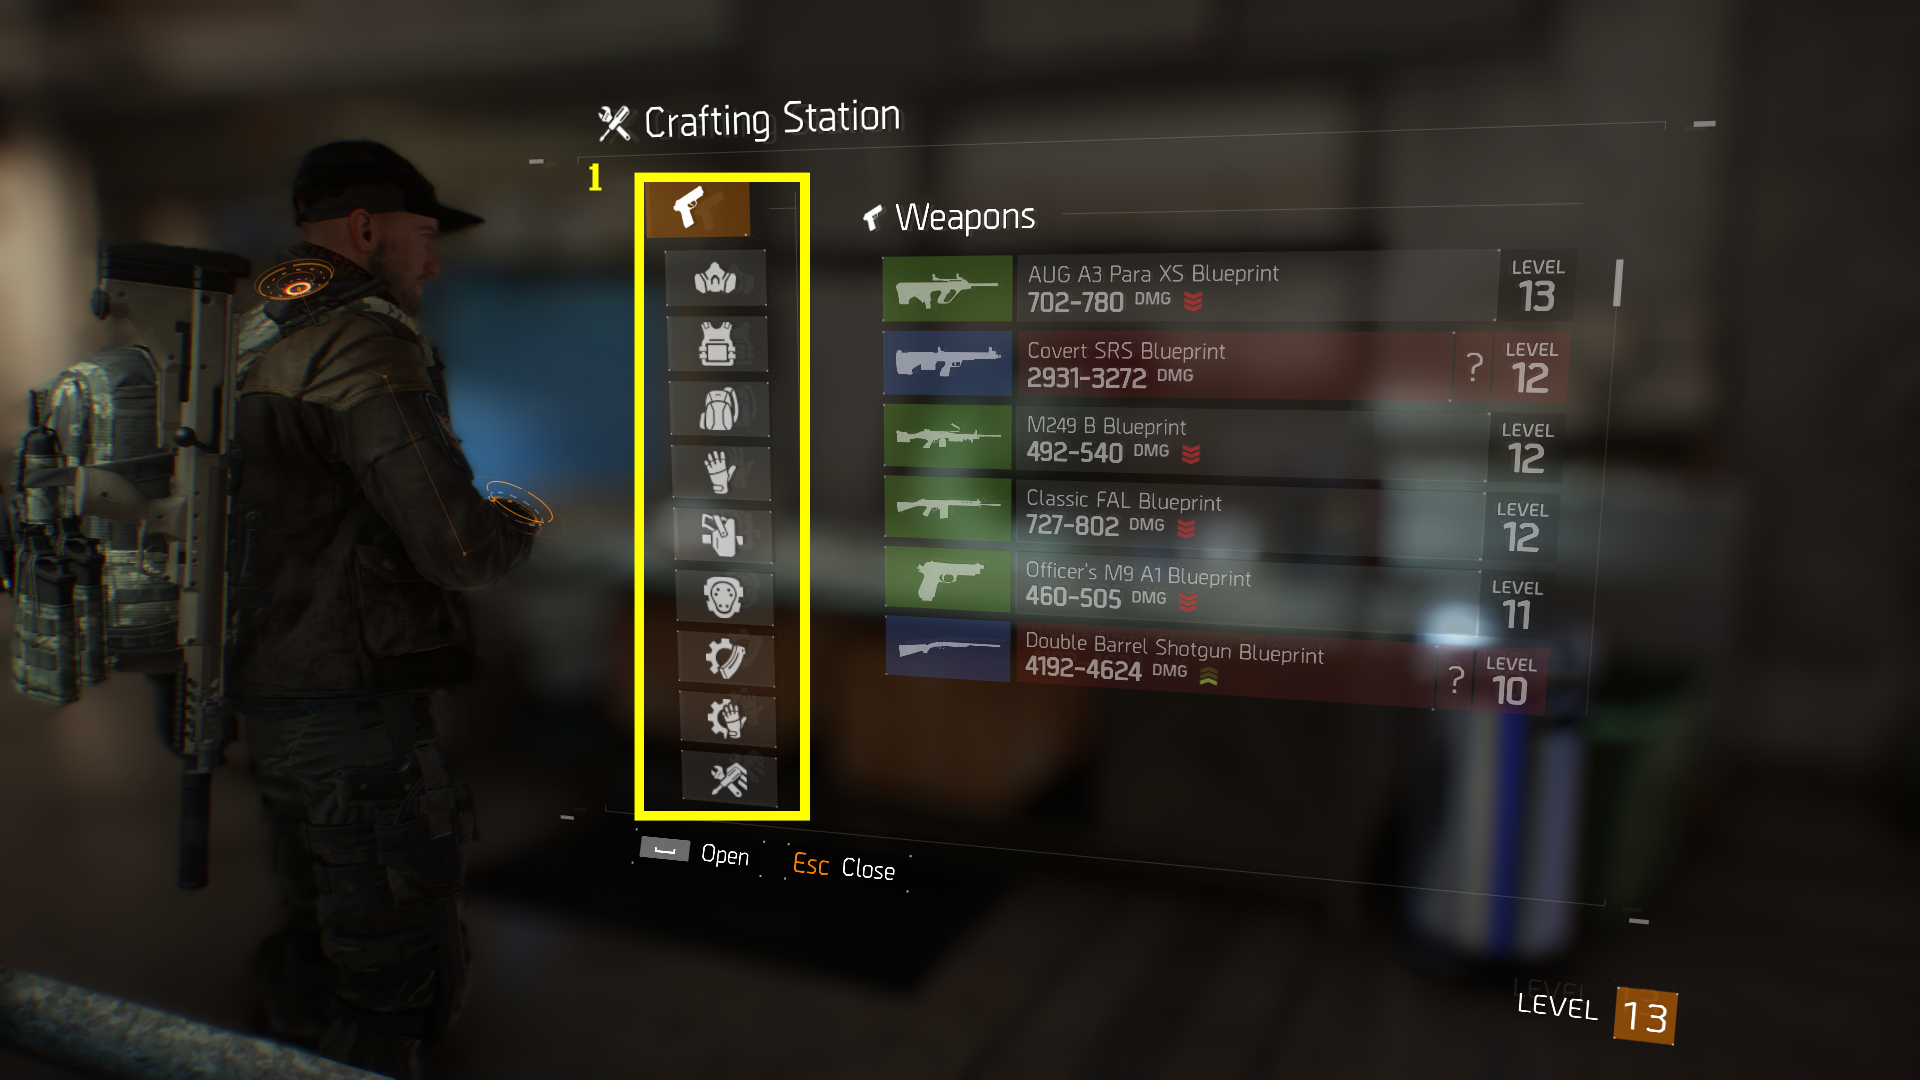 TeamBRG-The-Division-Crafting-Basics-Crafting-Menu-1